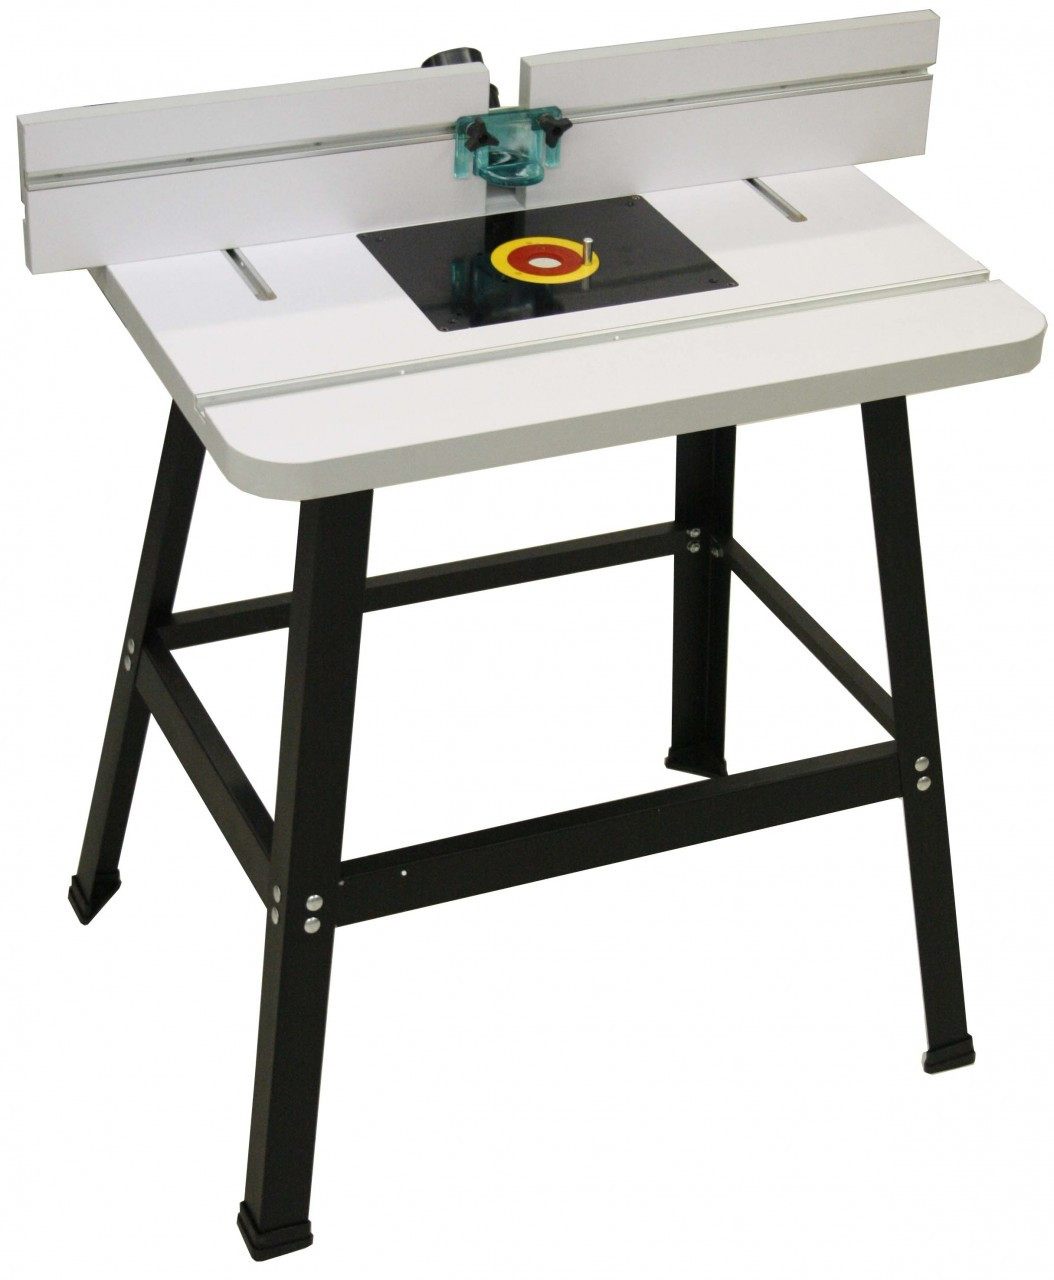 Tremendous Router Table W Stand And Fence B2944 Squirreltailoven Fun Painted Chair Ideas Images Squirreltailovenorg